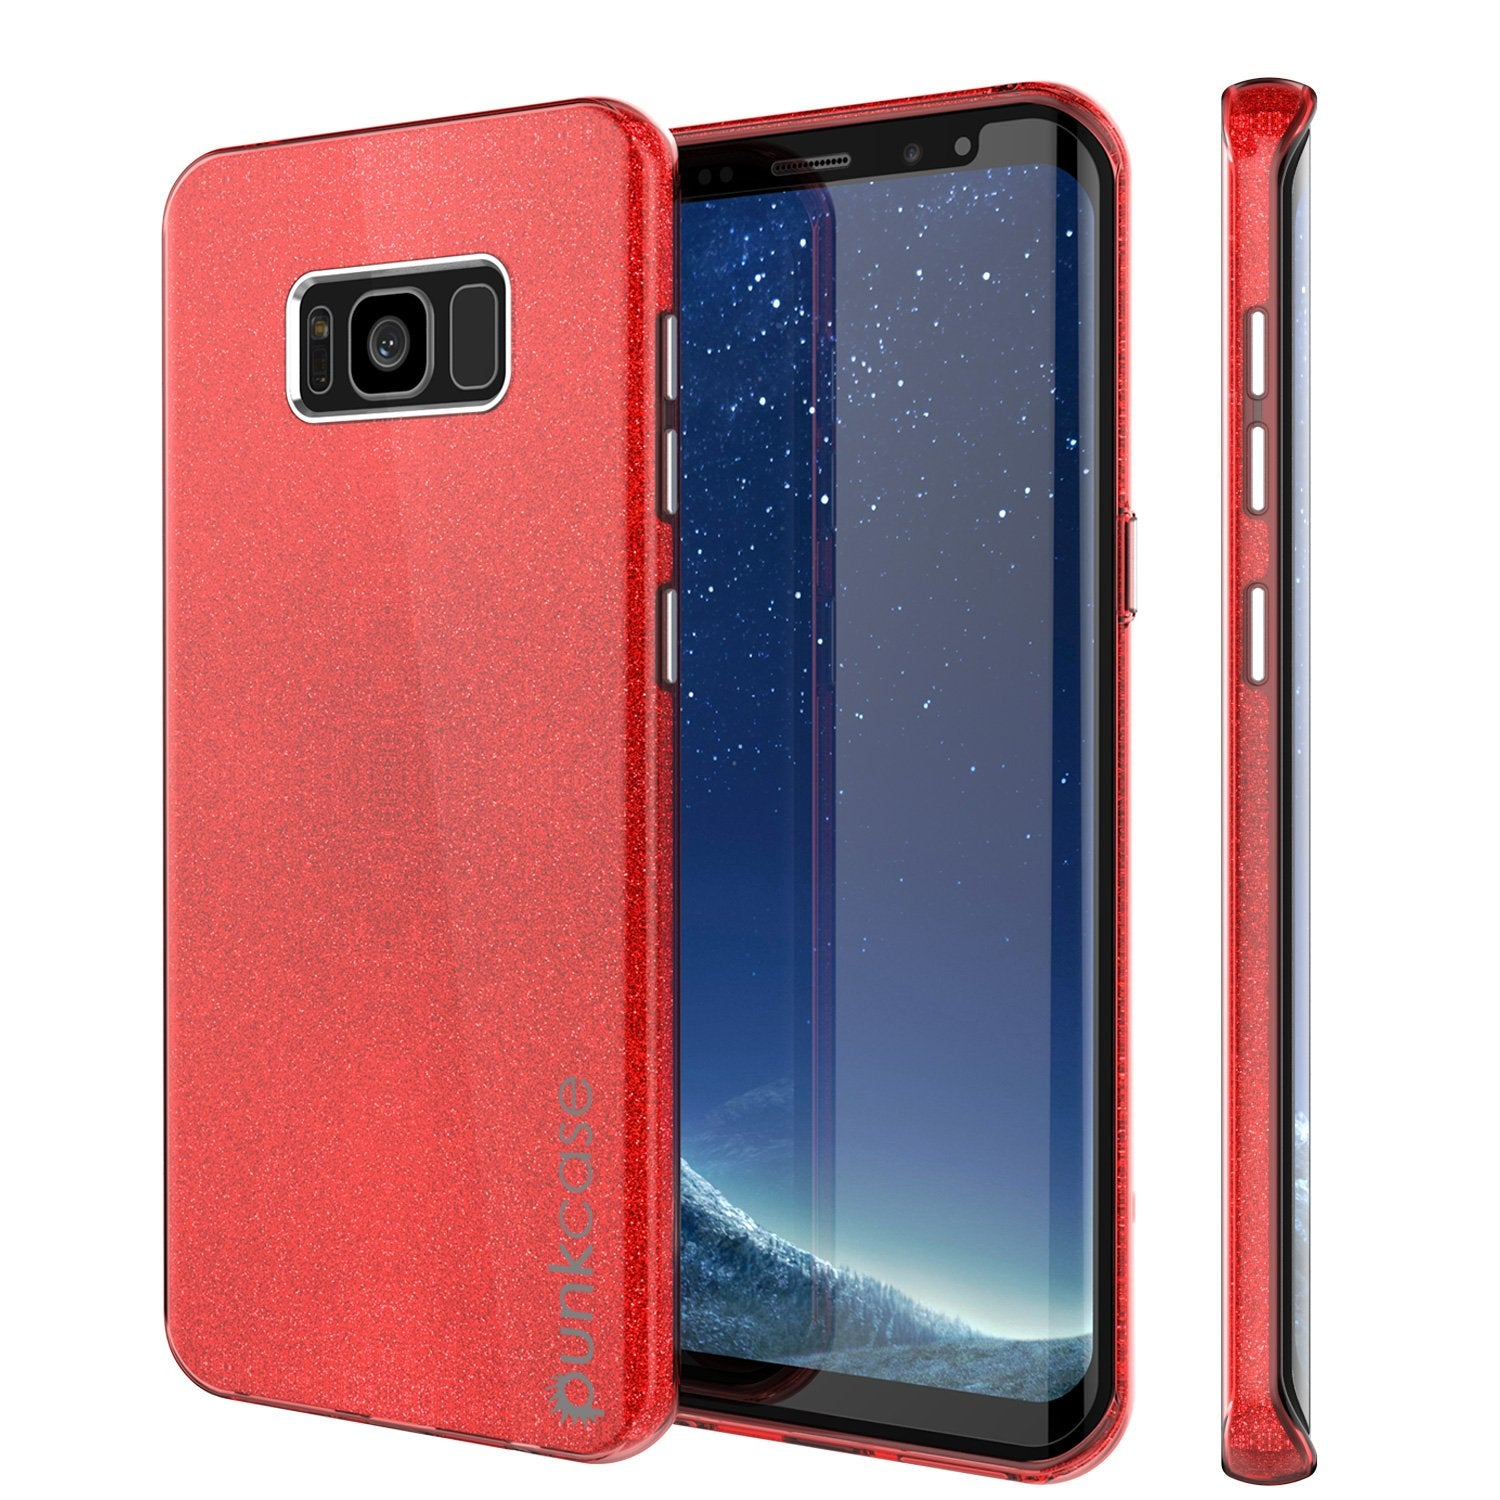 Galaxy S8 Plus Punkcase Galactic 2.0 Series Ultra Slim Case [Red]